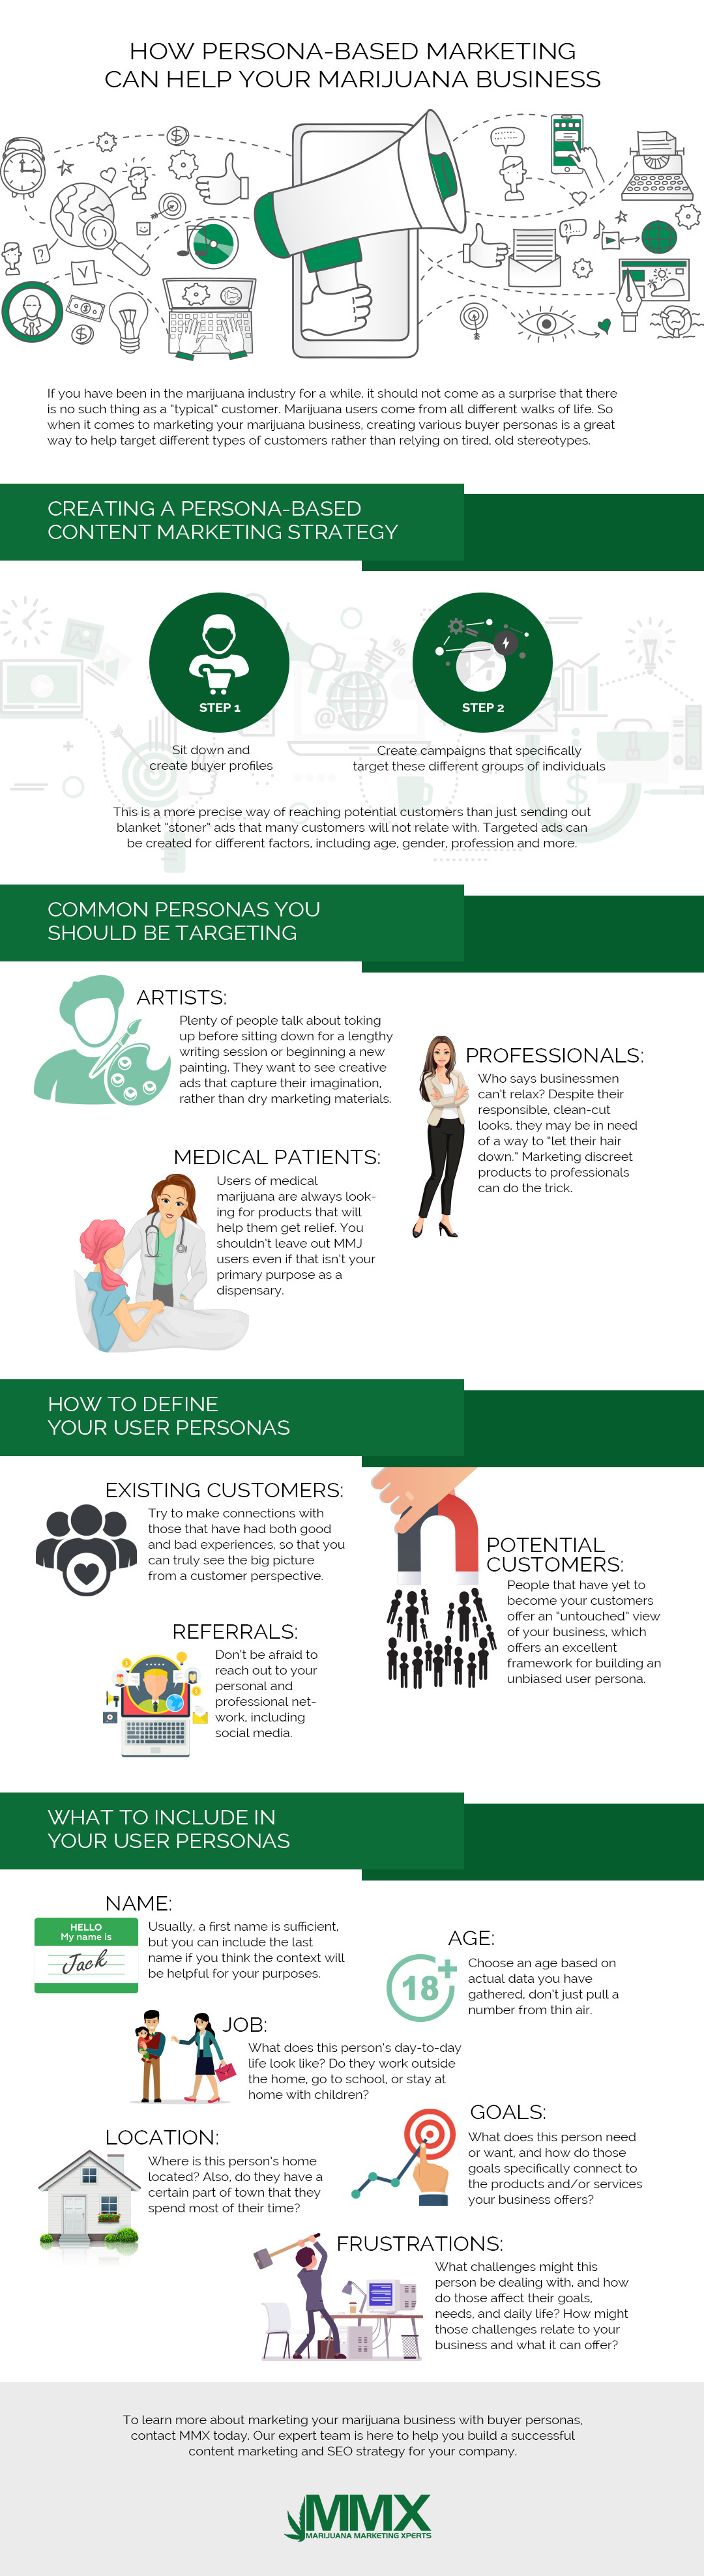 How Persona-Based Marketing Can Help Your Marijuana Business InfoGraphic - MMX